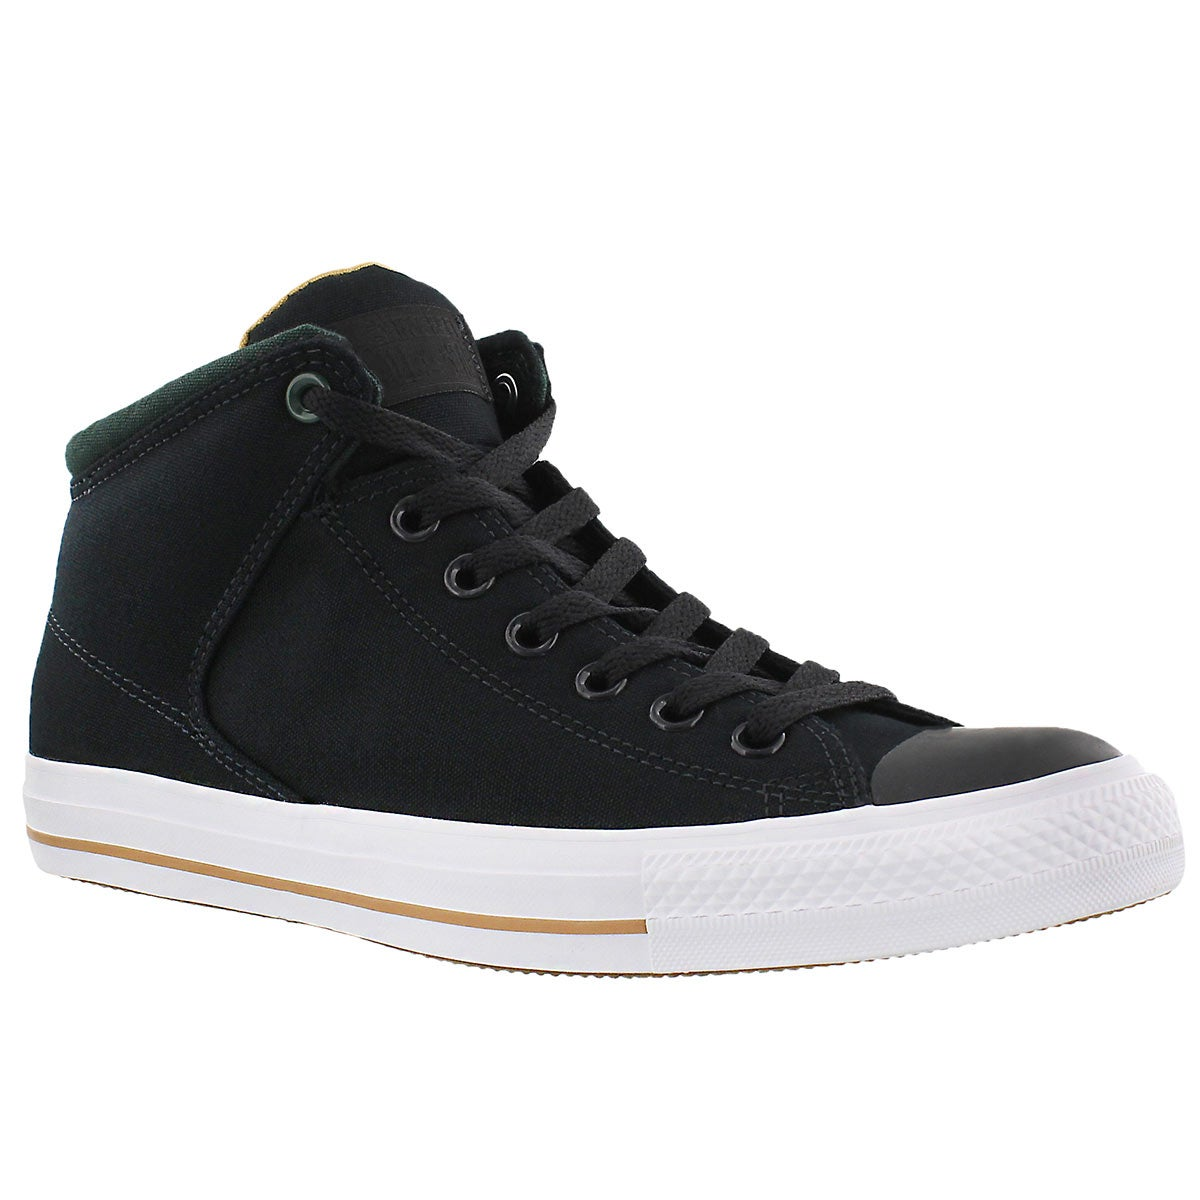 Mns CT A/S High Street black mid sneaker